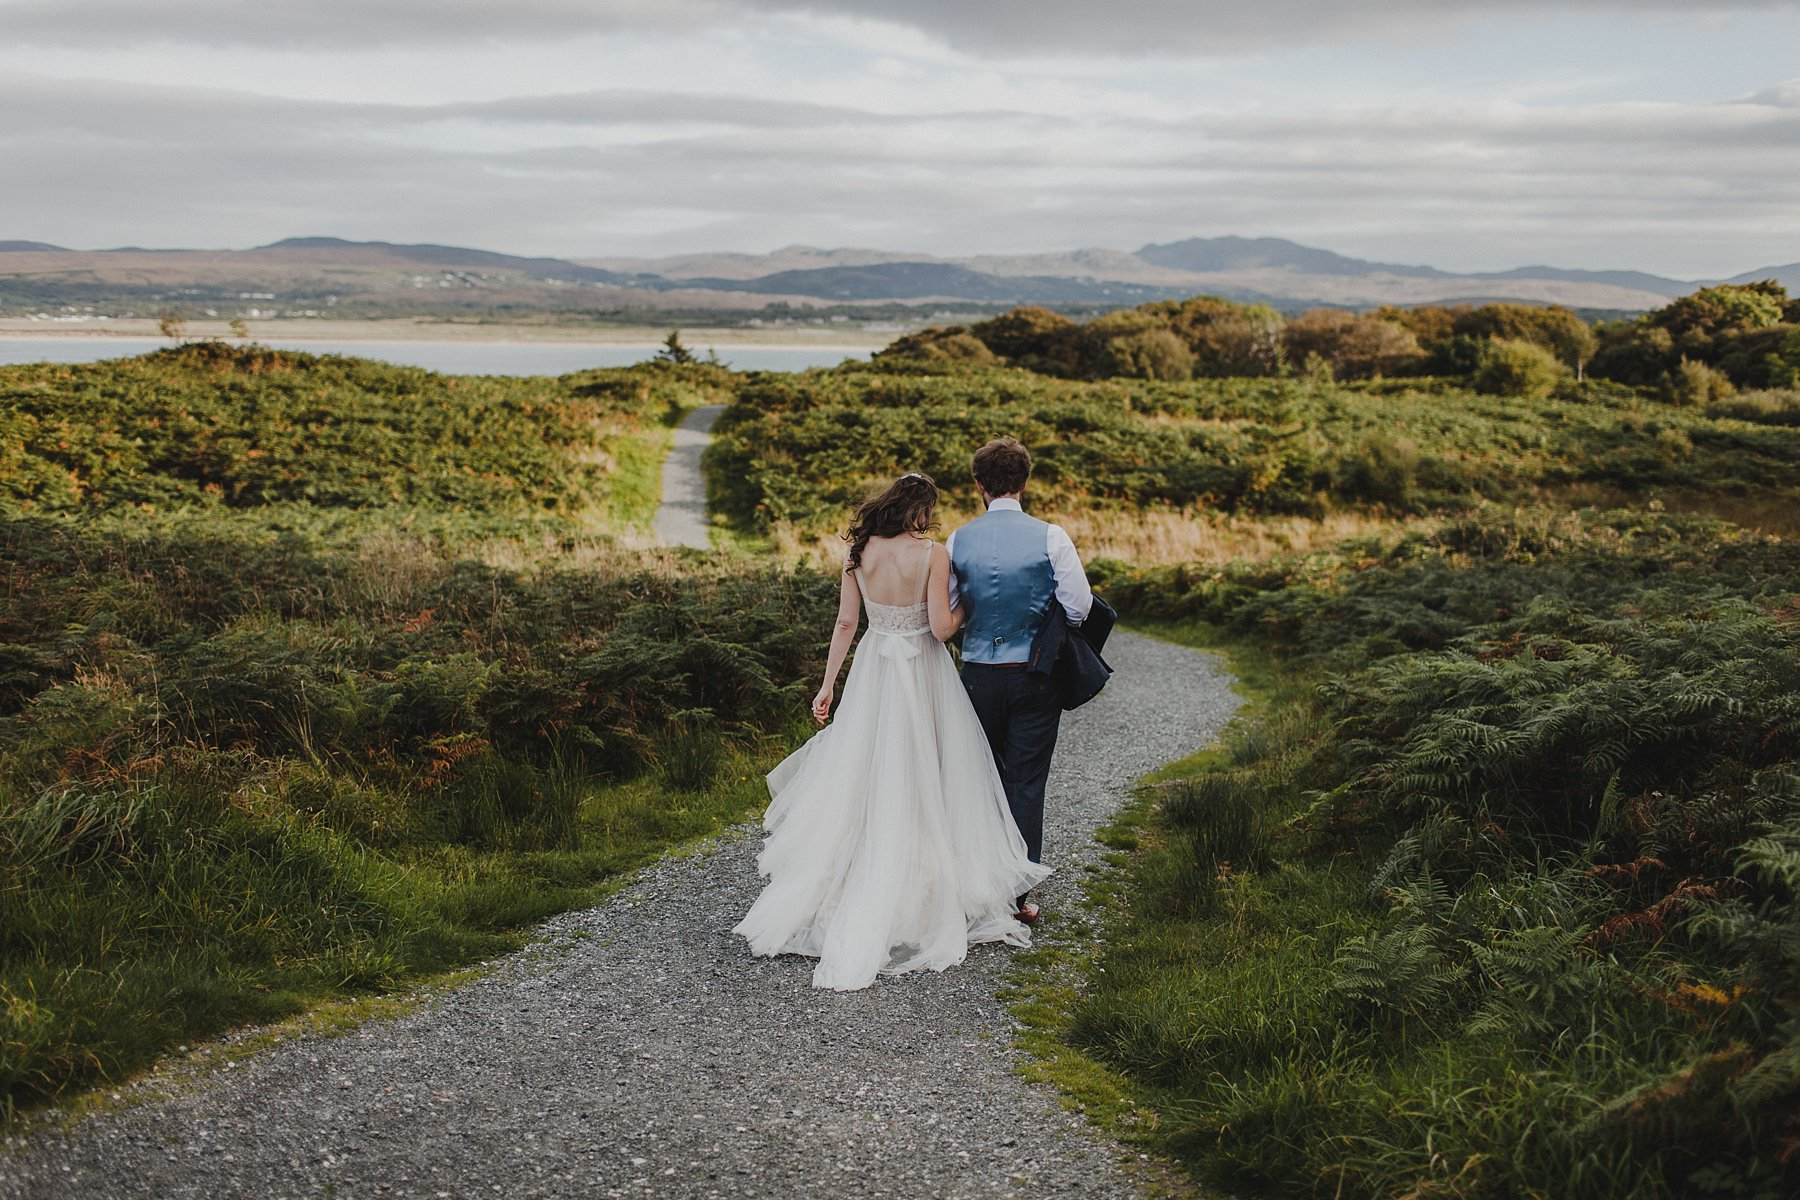 hornhead_donegak_elopement_weddings_0071